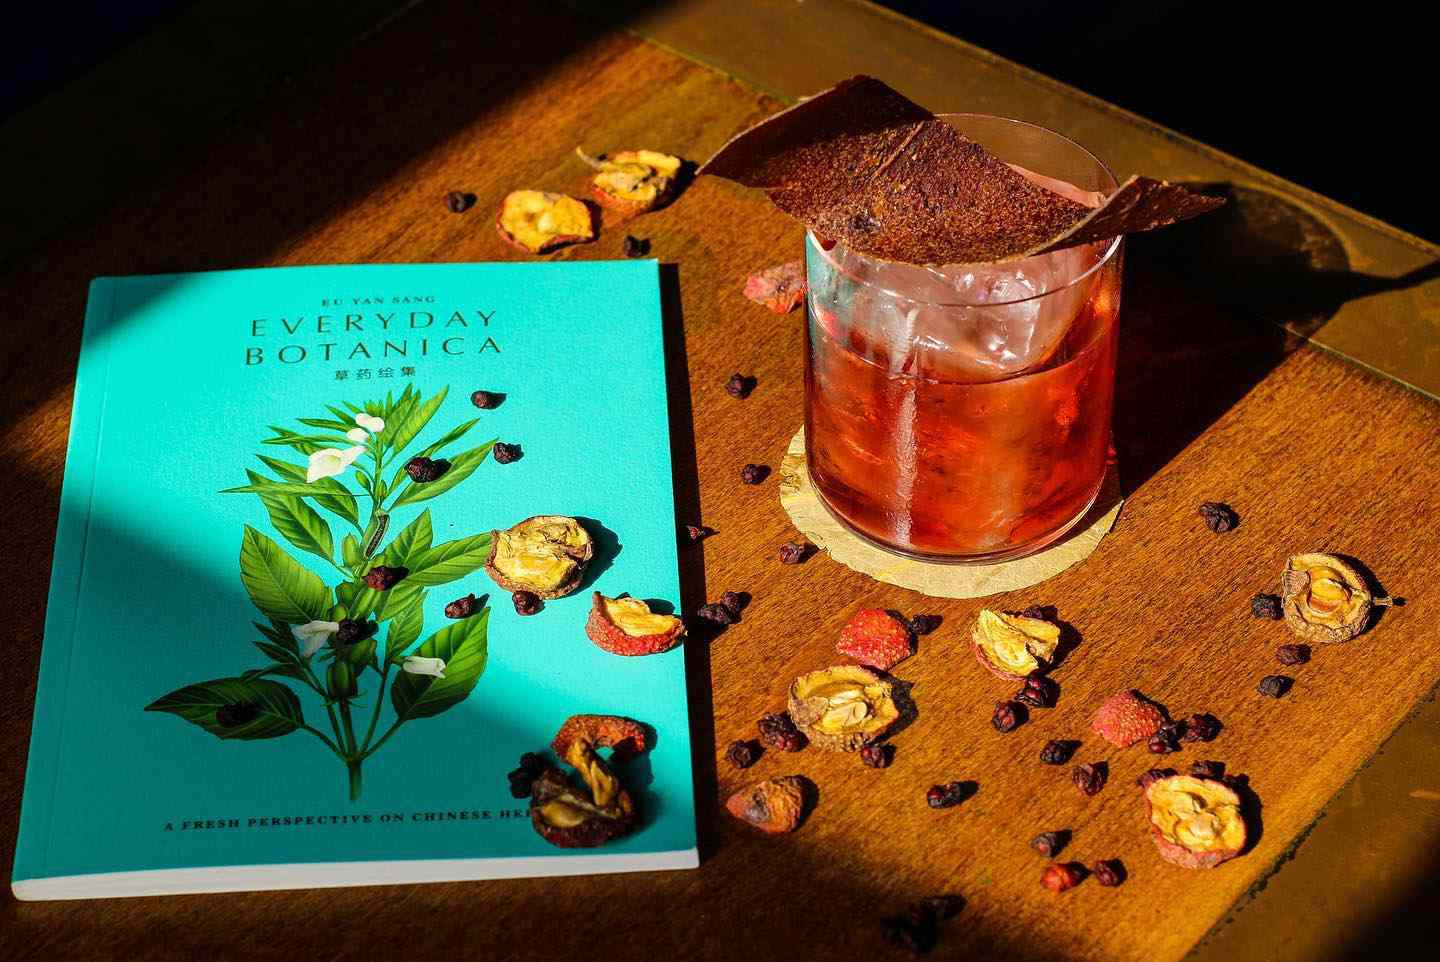 Specialty cocktail sitting beside a book titled